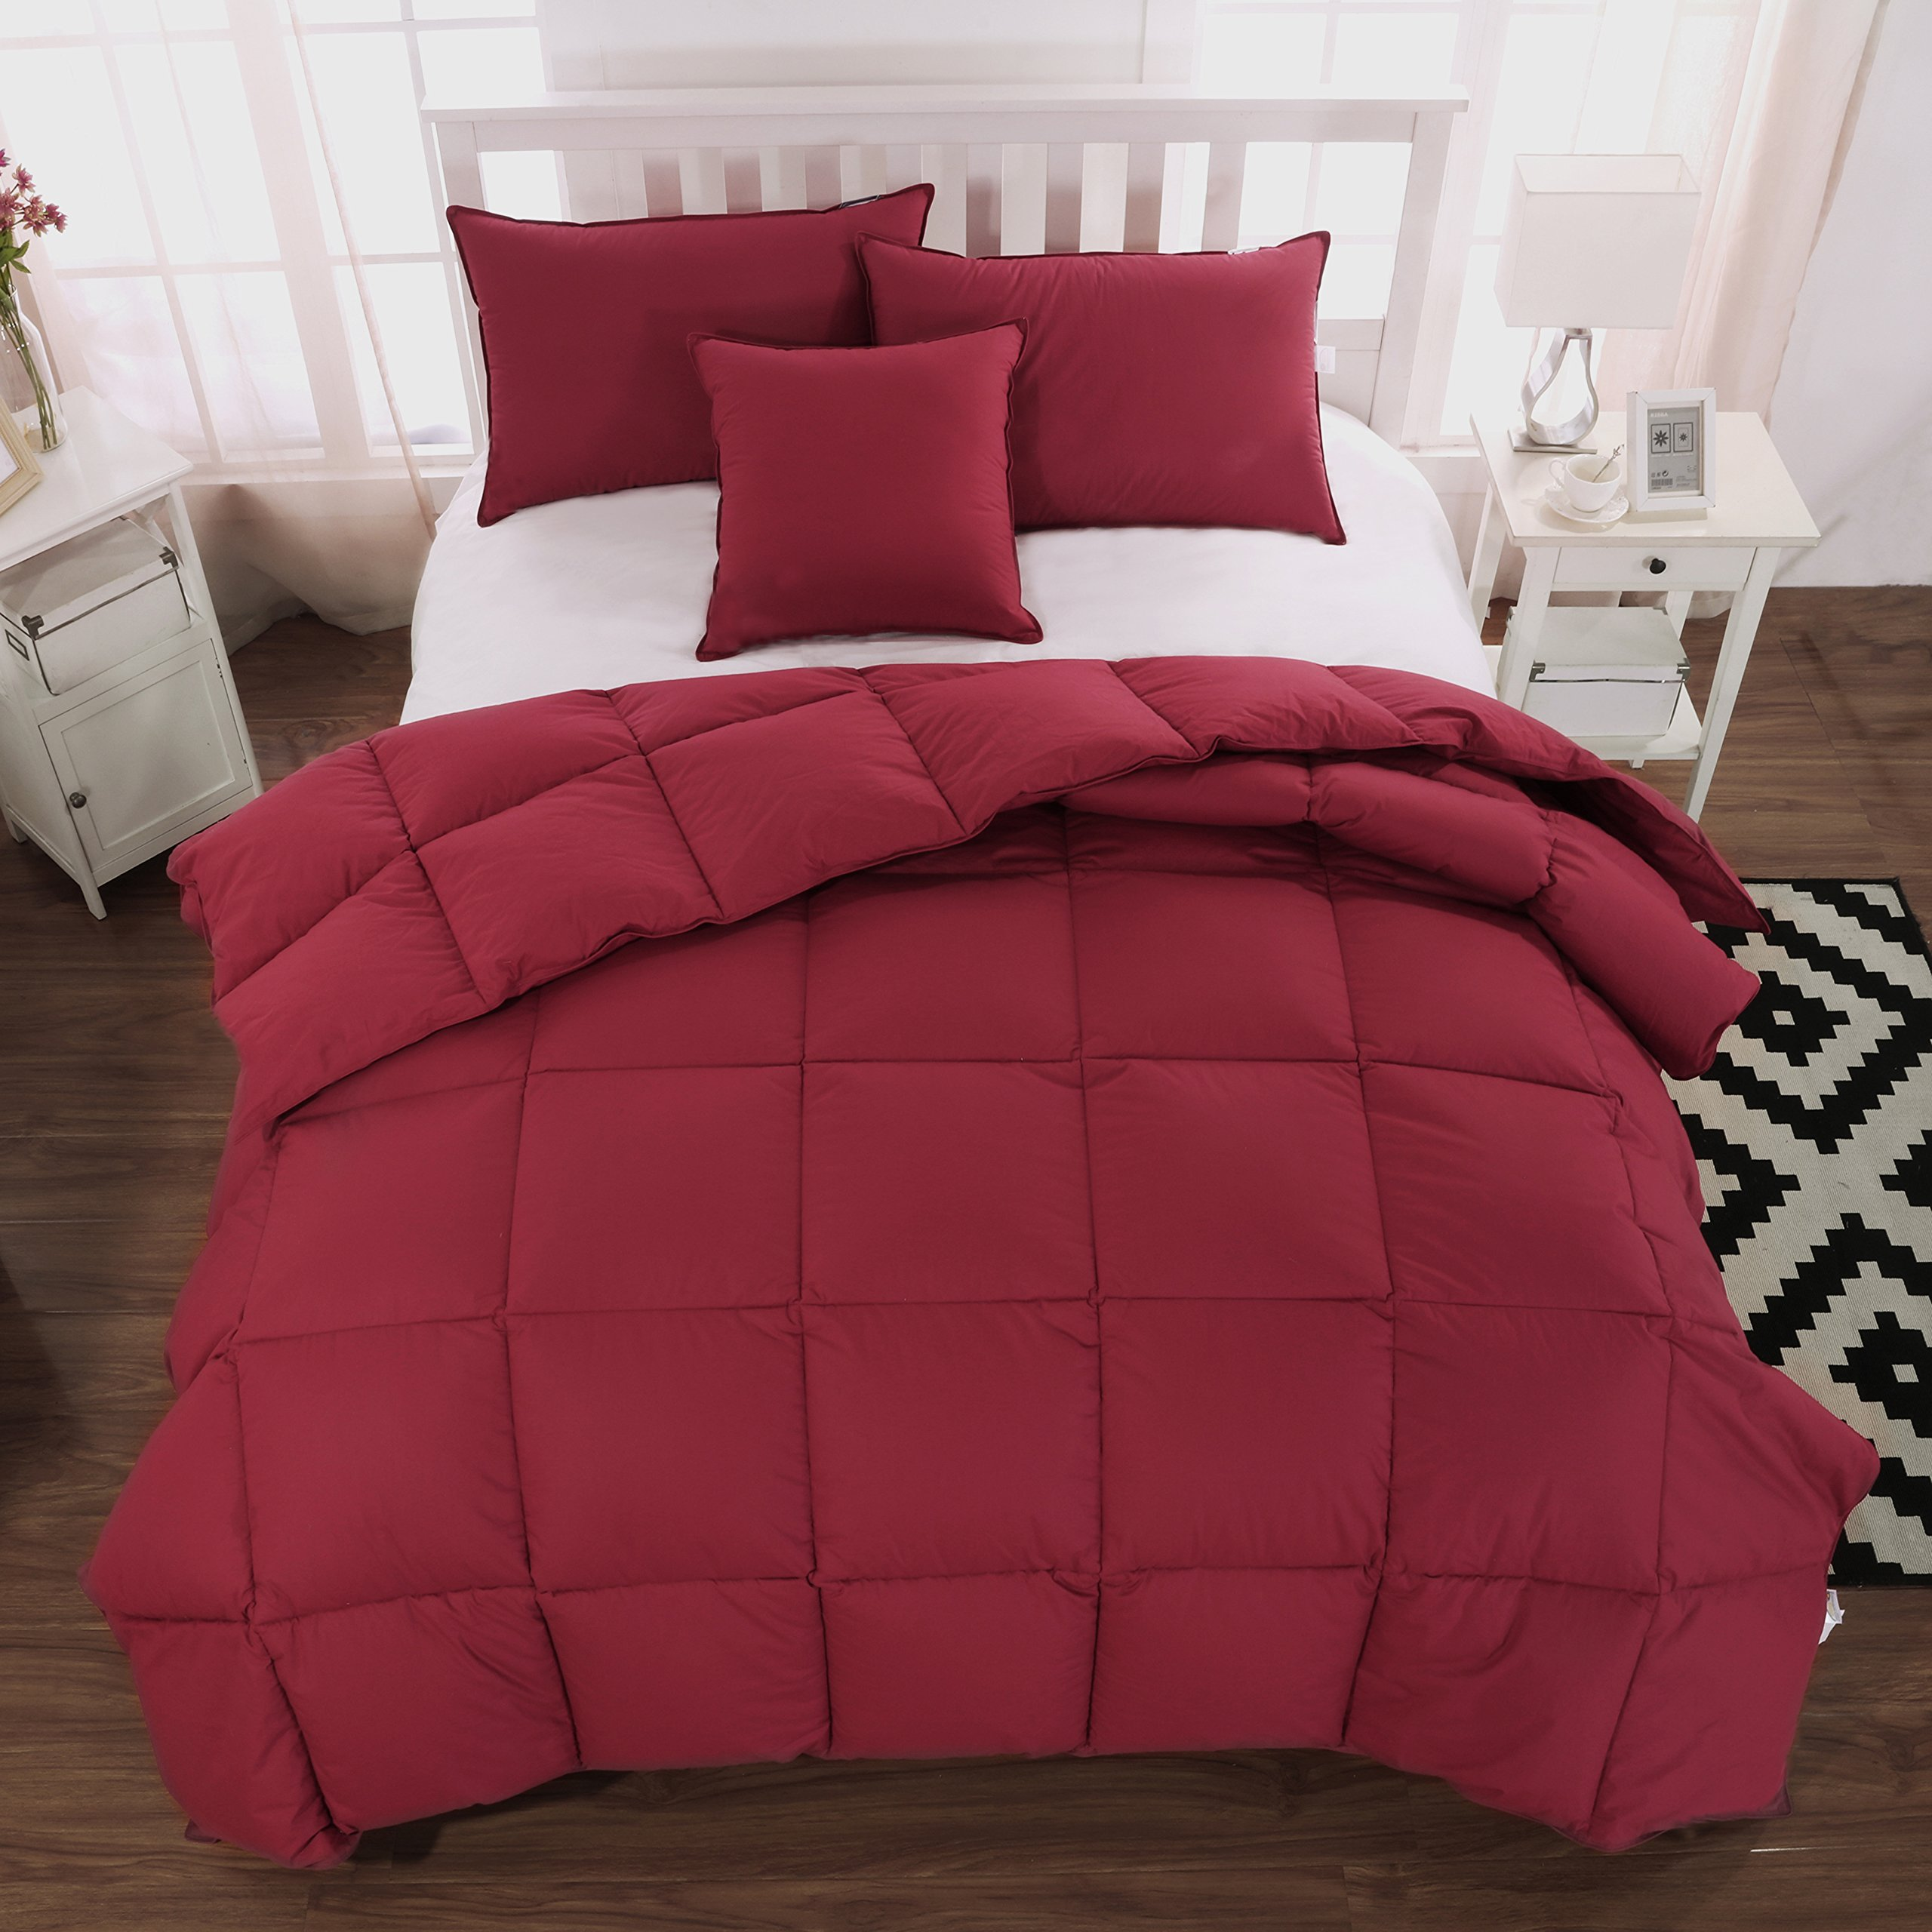 Live Down Goose Down Feather Comforter/Duvet/Quilt Winter 100% Organic Cotton (Cal King 108x94inch, Red)